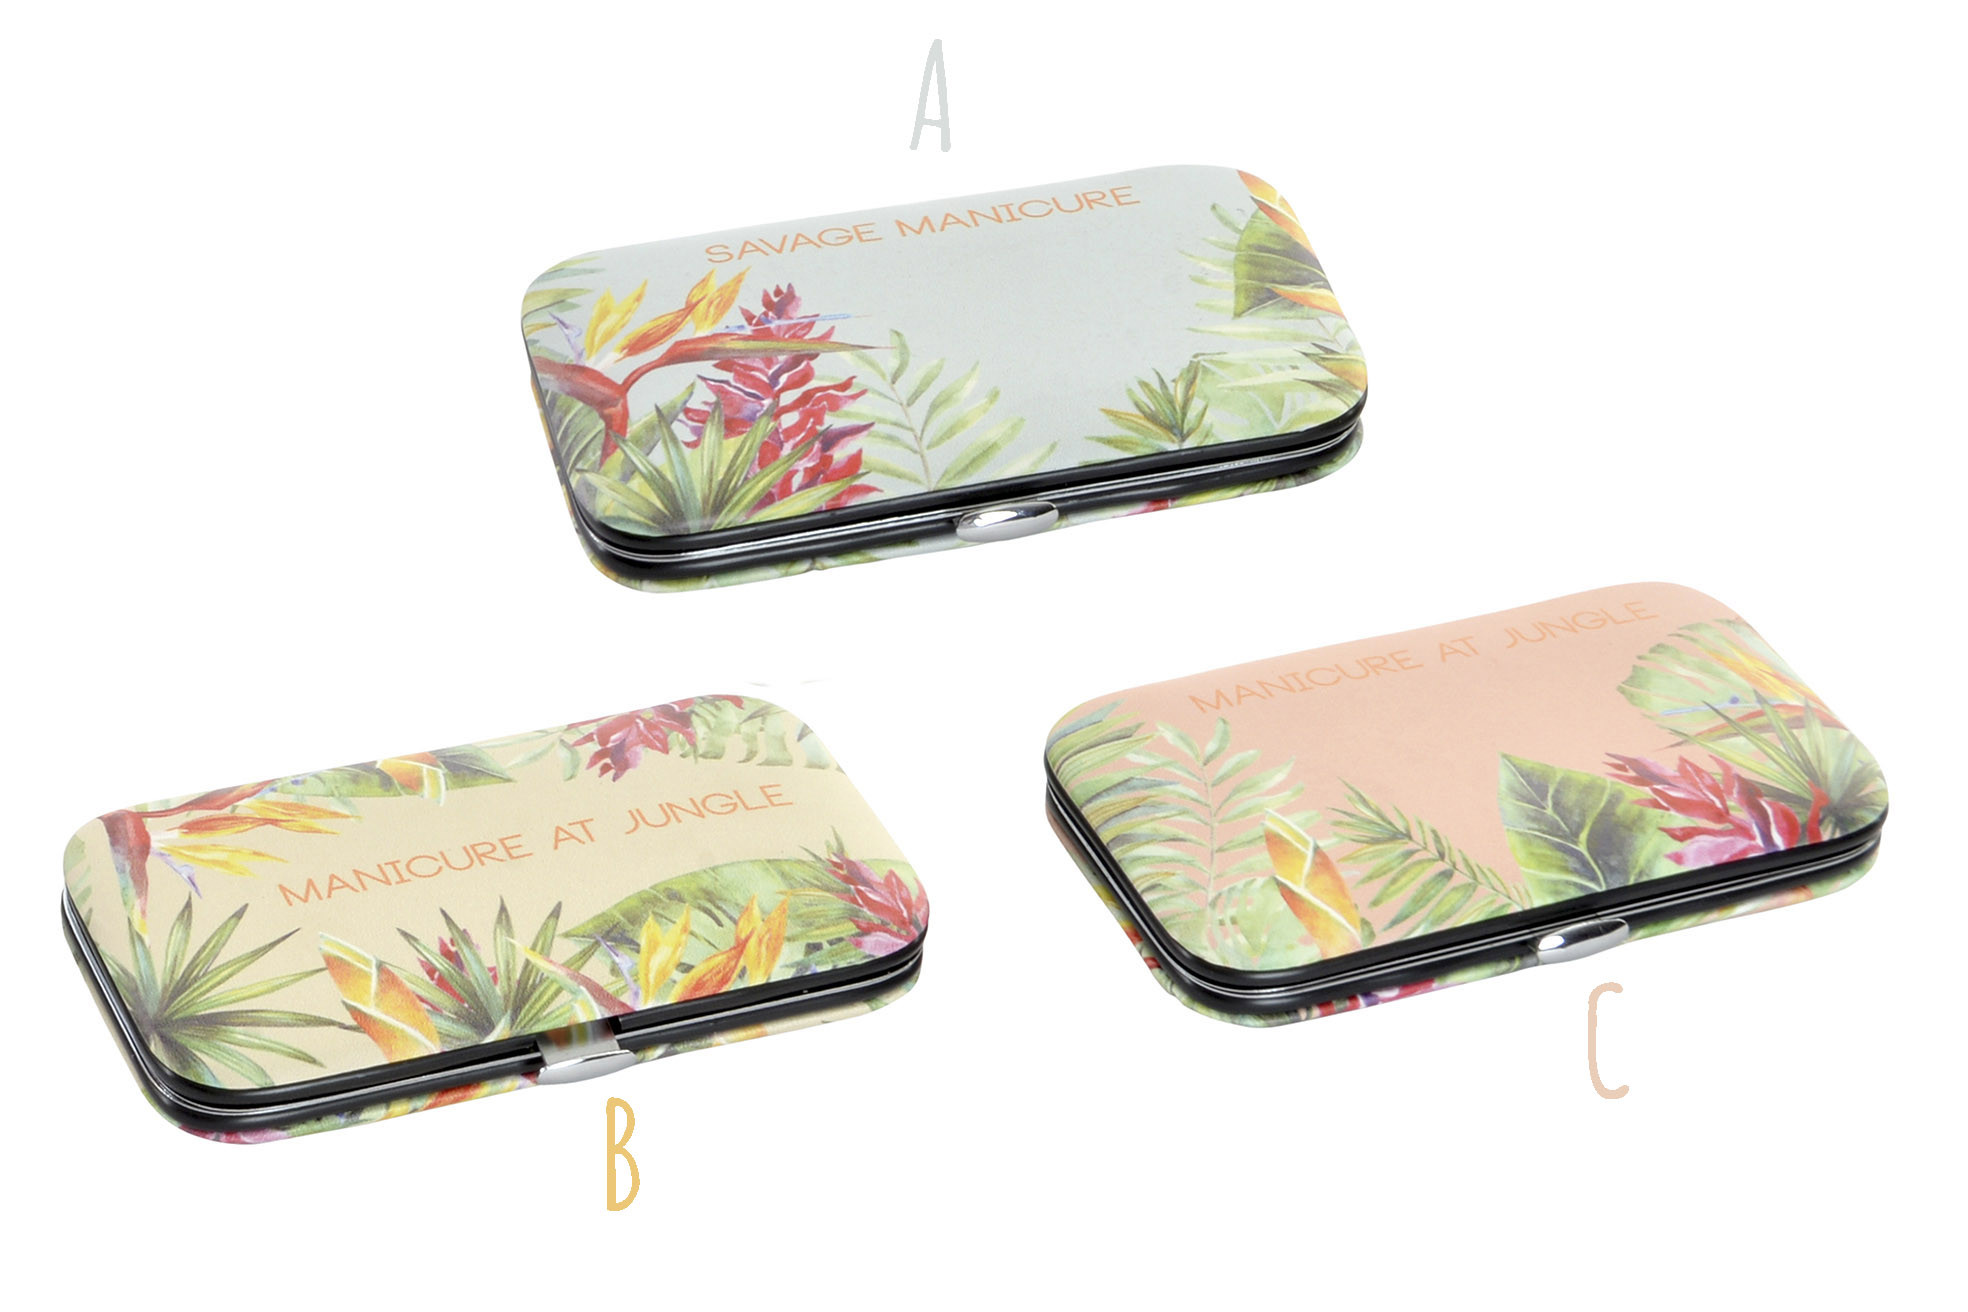 Set/Kit Manicure 5 piece set with Case, Stainless. Design of Jungle, with a Tropical flair (10,8cmX6,5cmX2cm) - Home and More